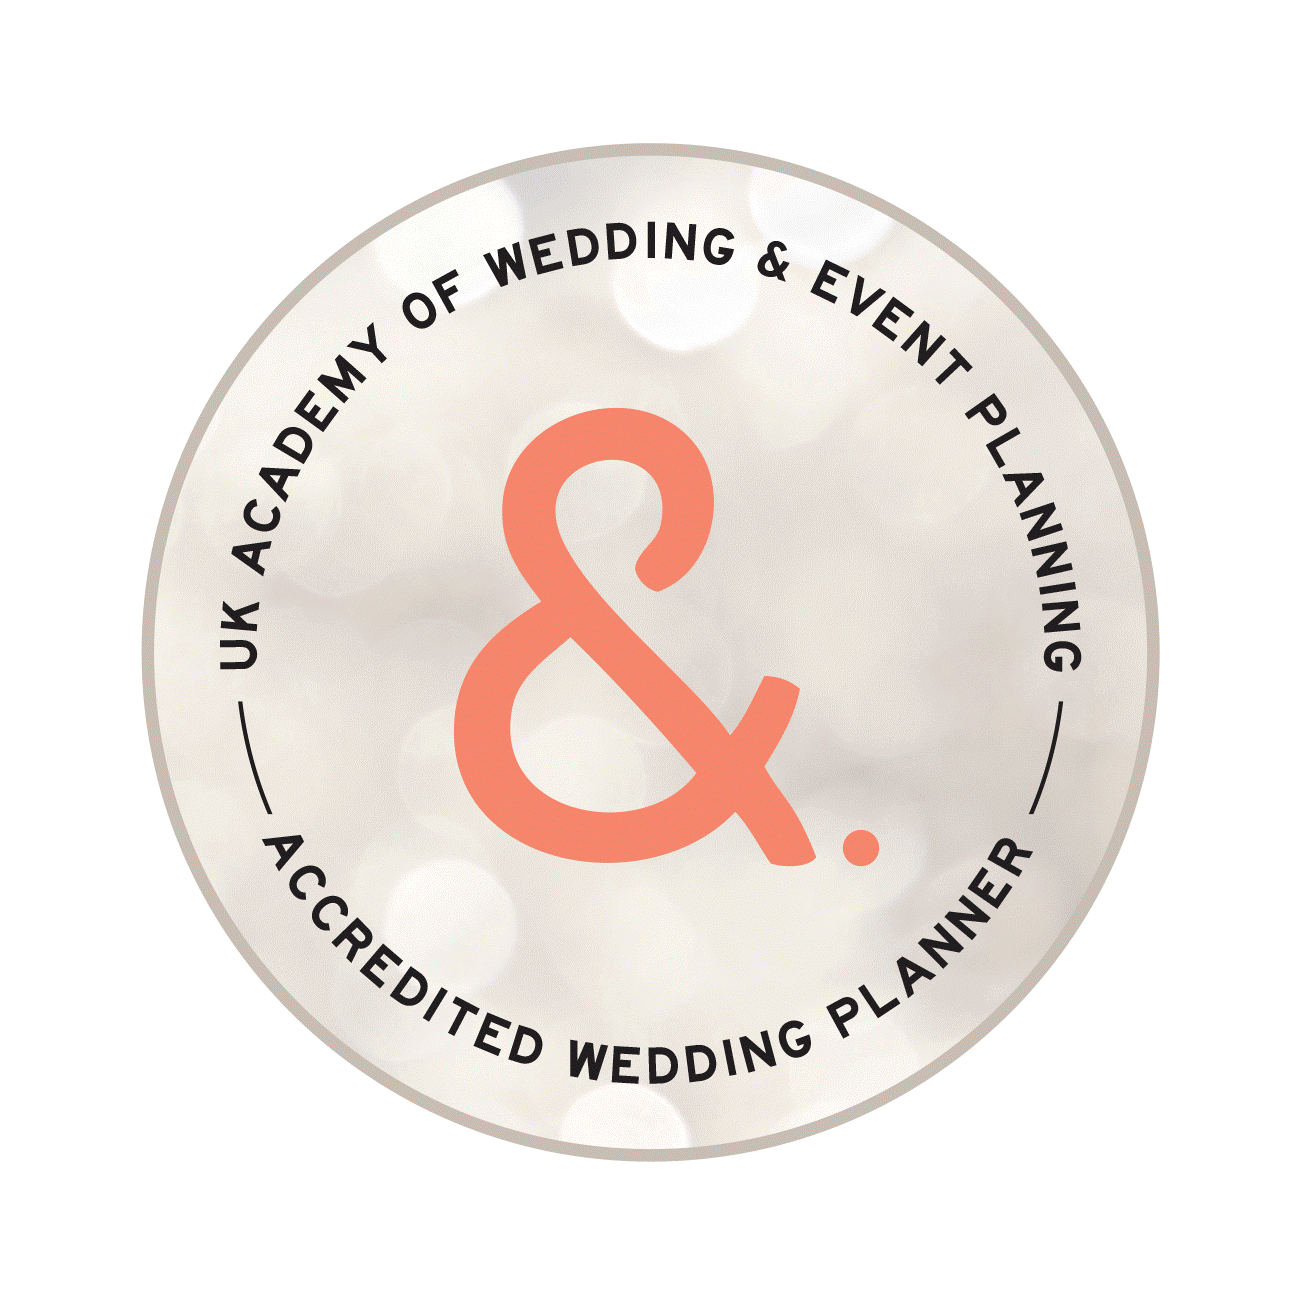 Accredited Wedding Planner